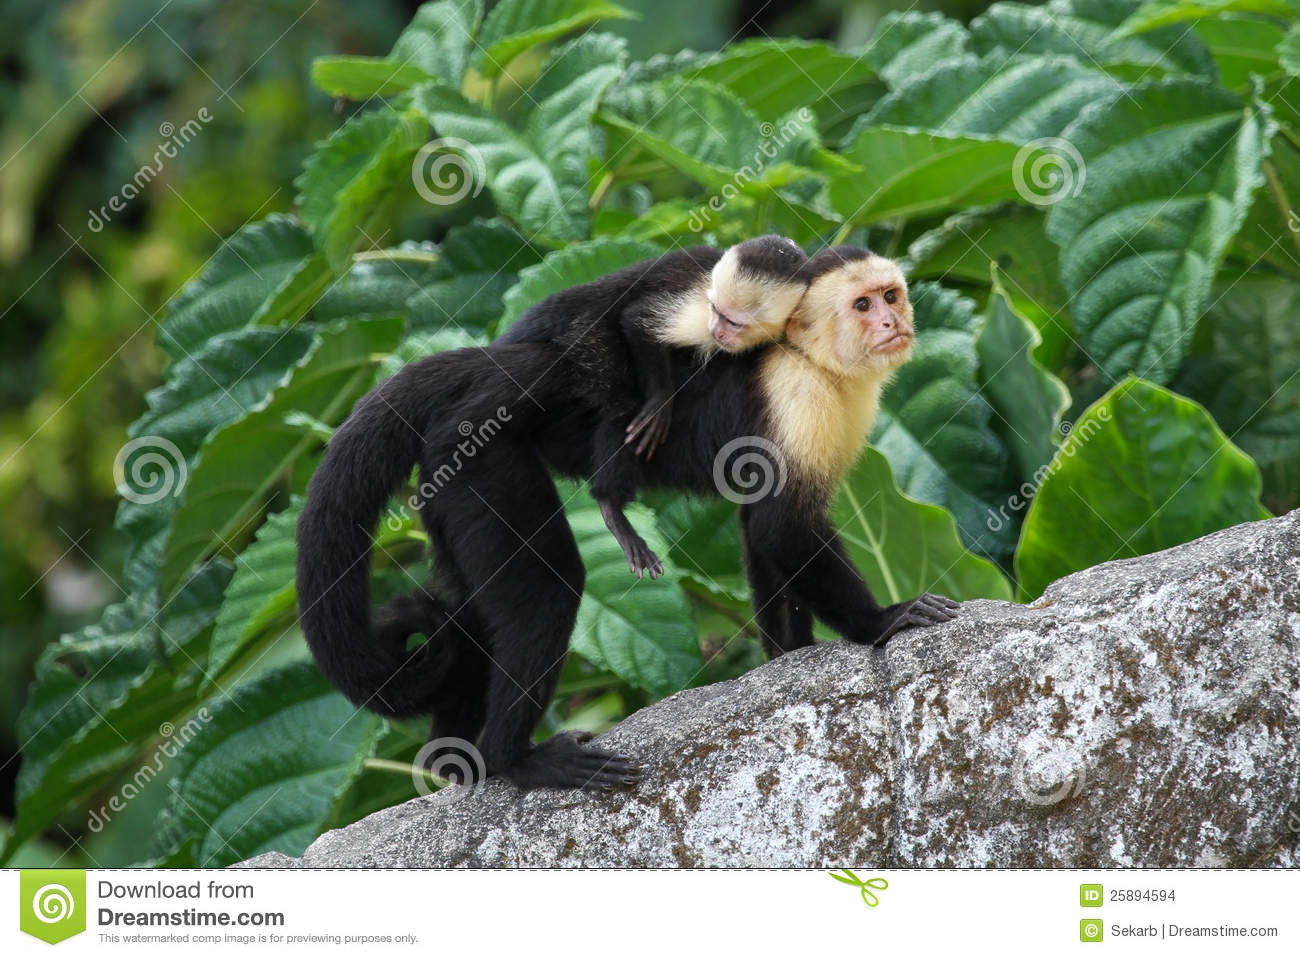 Adult Capuchin Monkey Carrying Baby On Its Back Stock